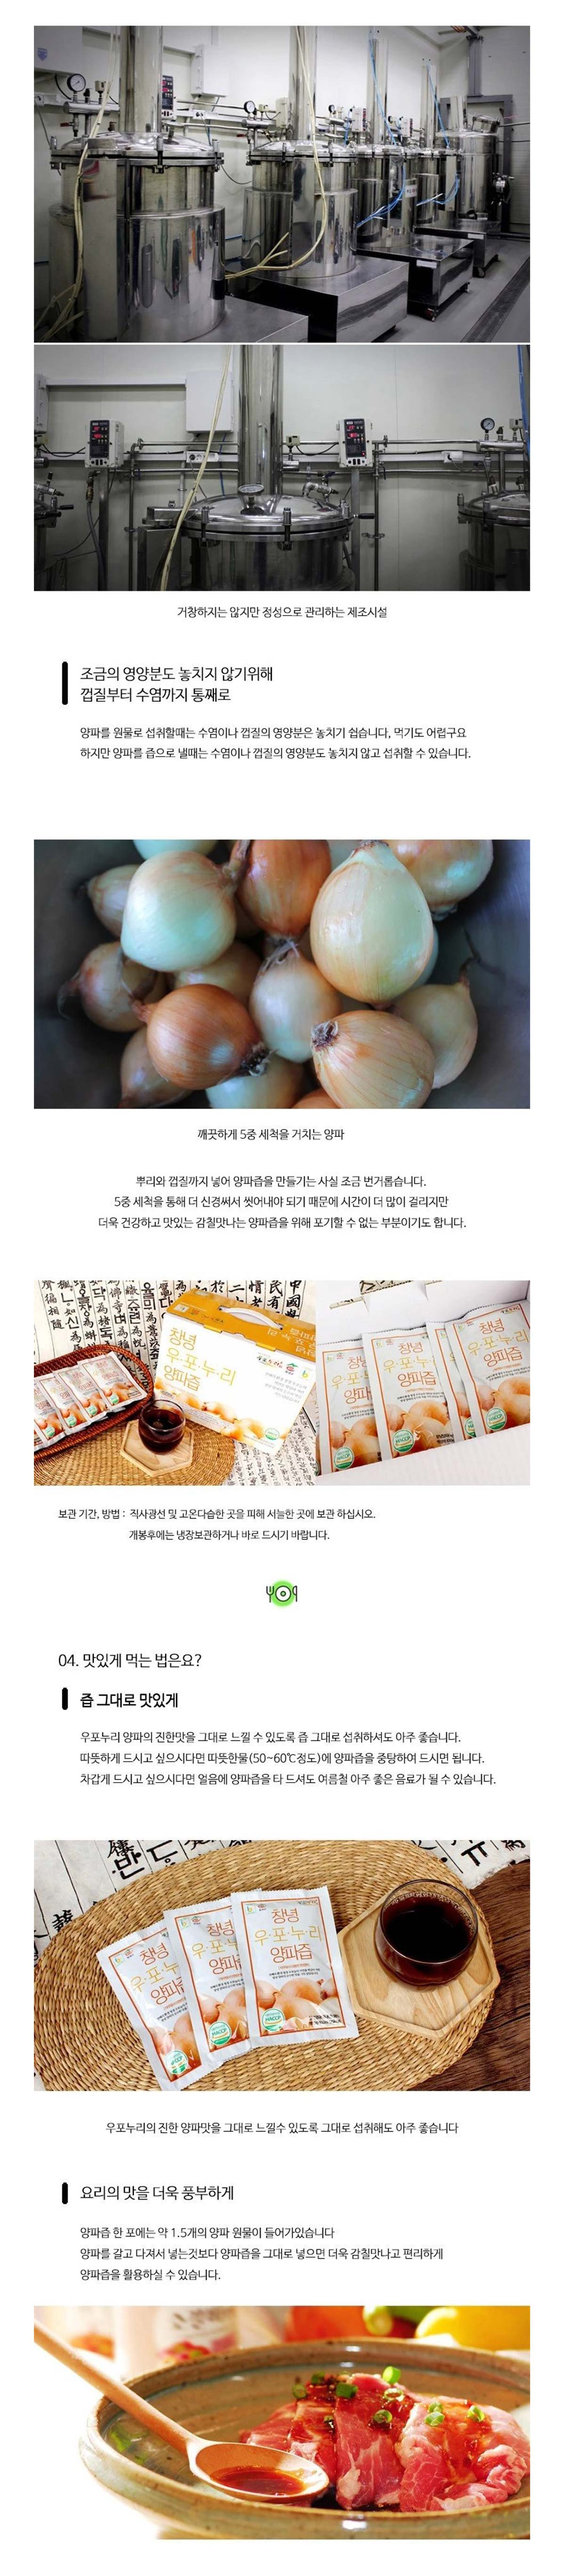 changnyeong_onion_juice_02